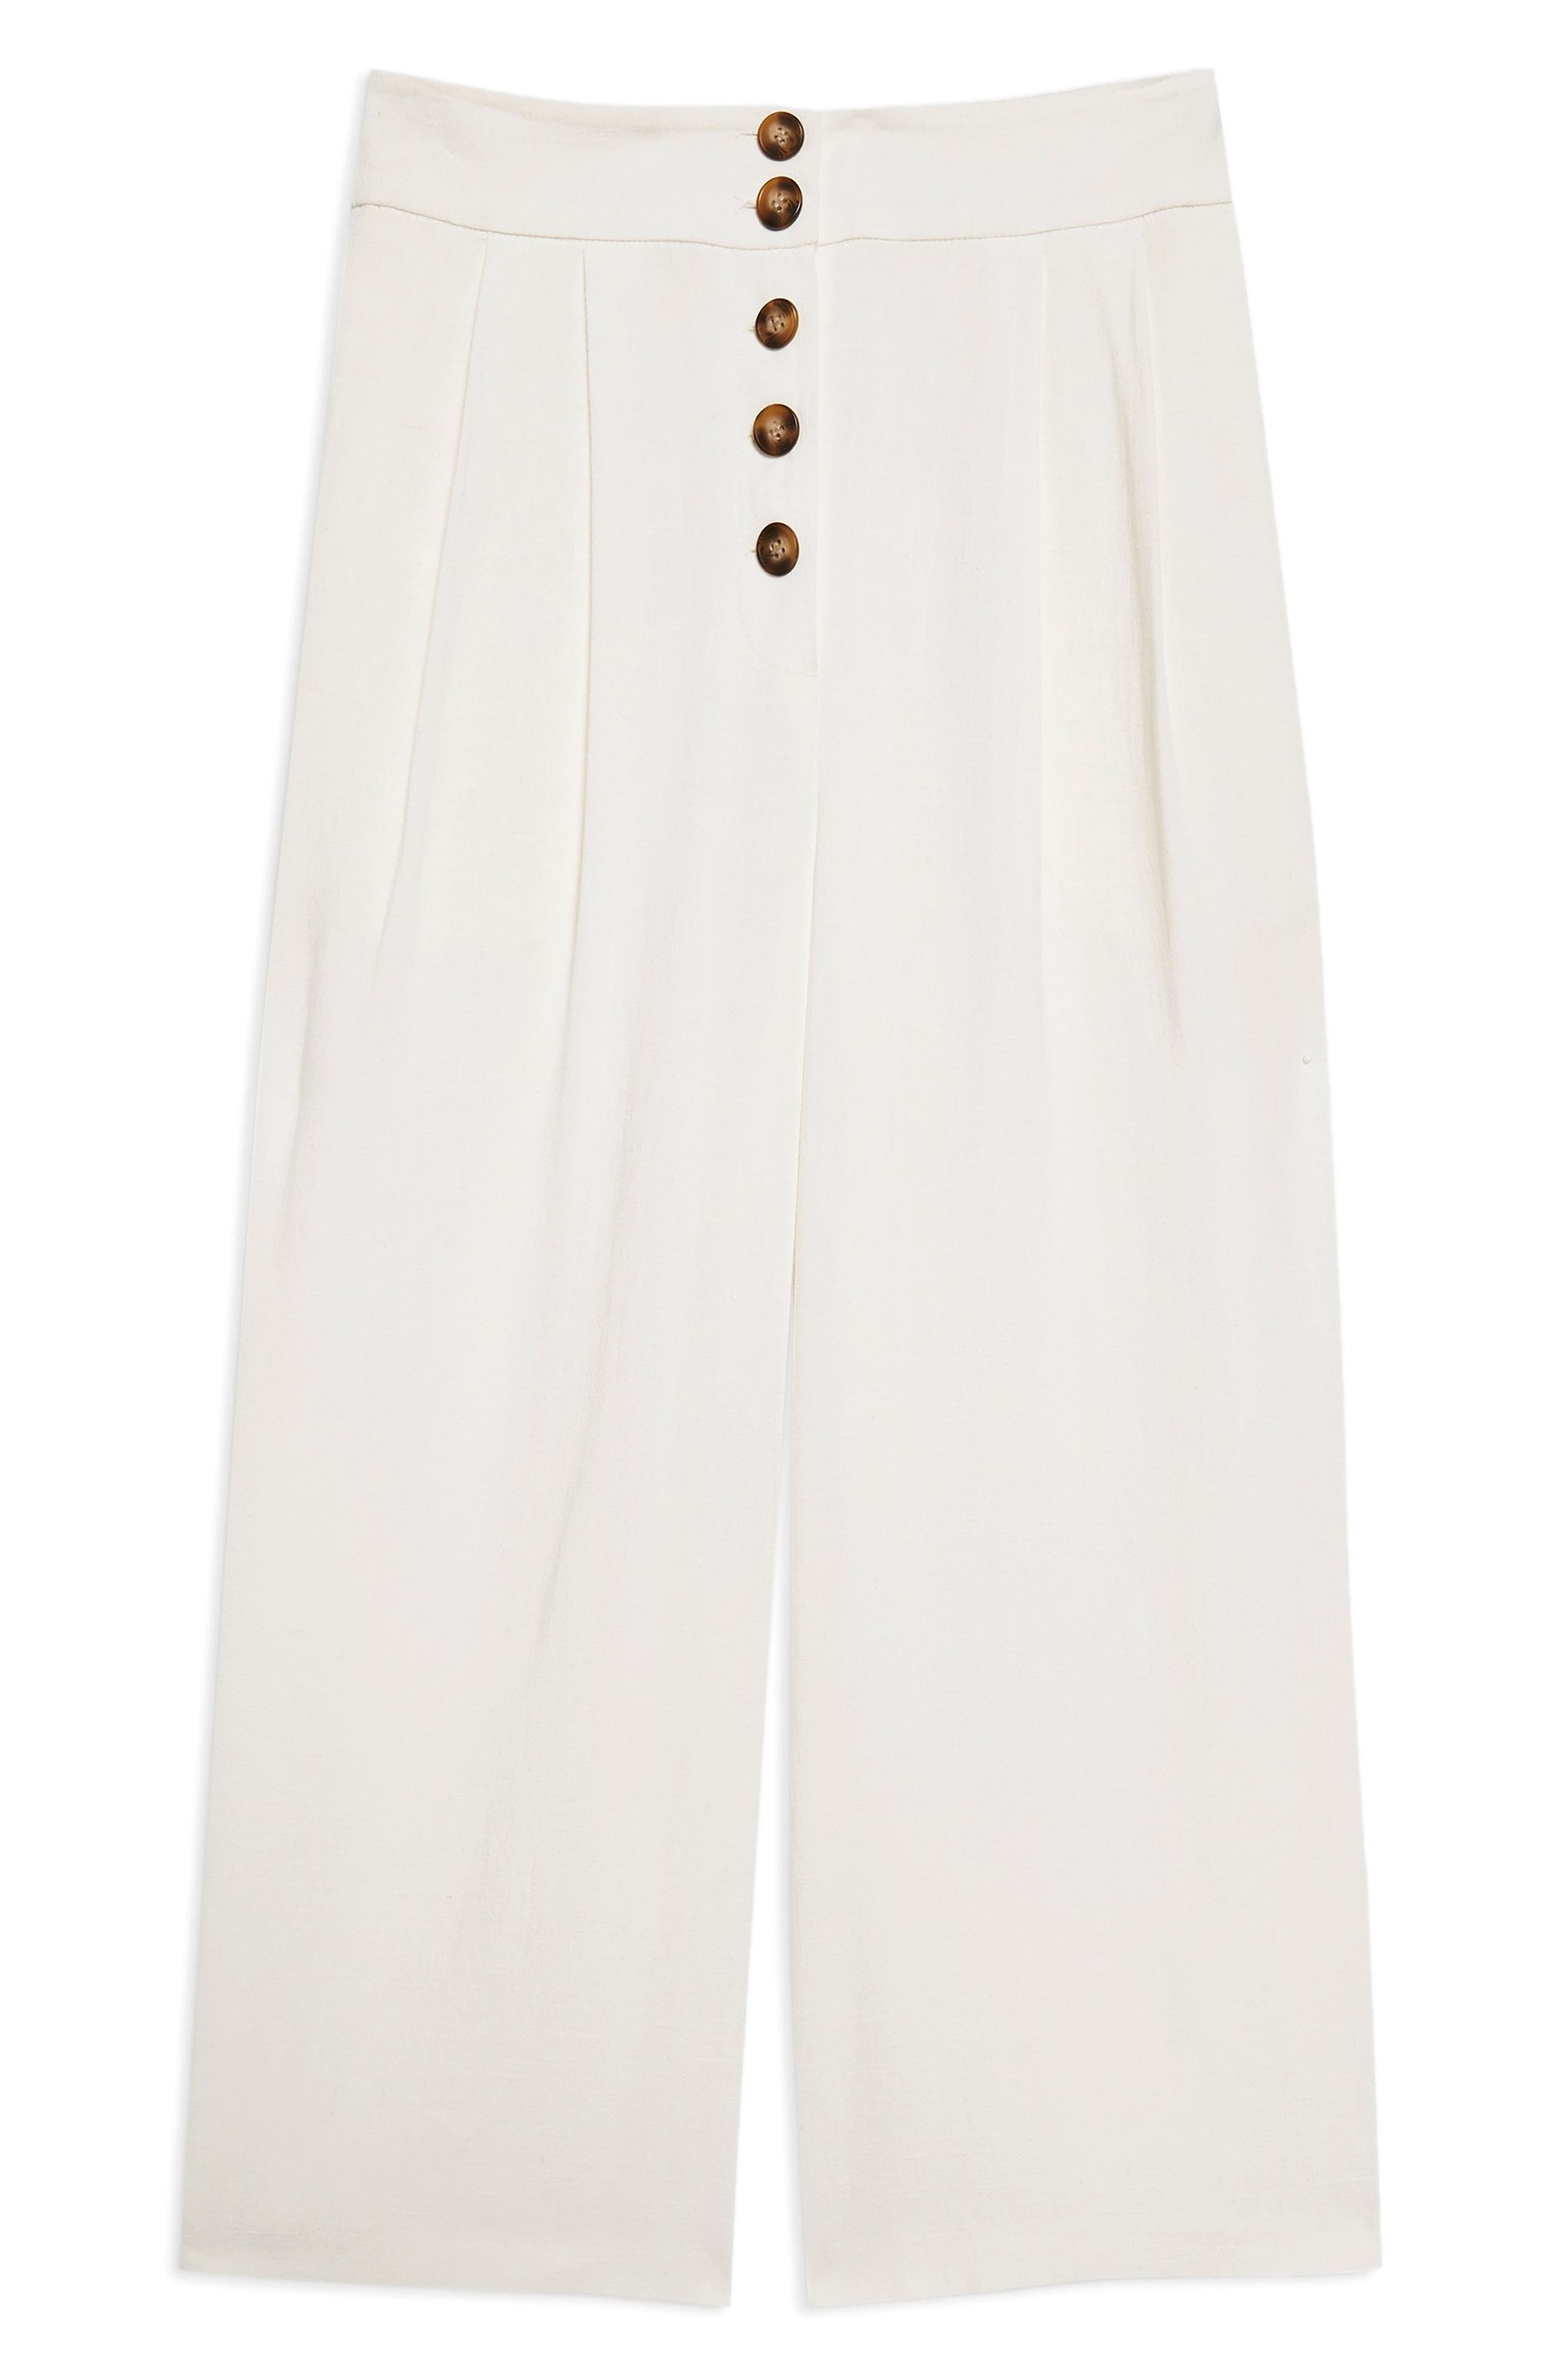 Horn Button Crop Wide Leg Trousers,                             Alternate thumbnail 6, color,                             Ivory